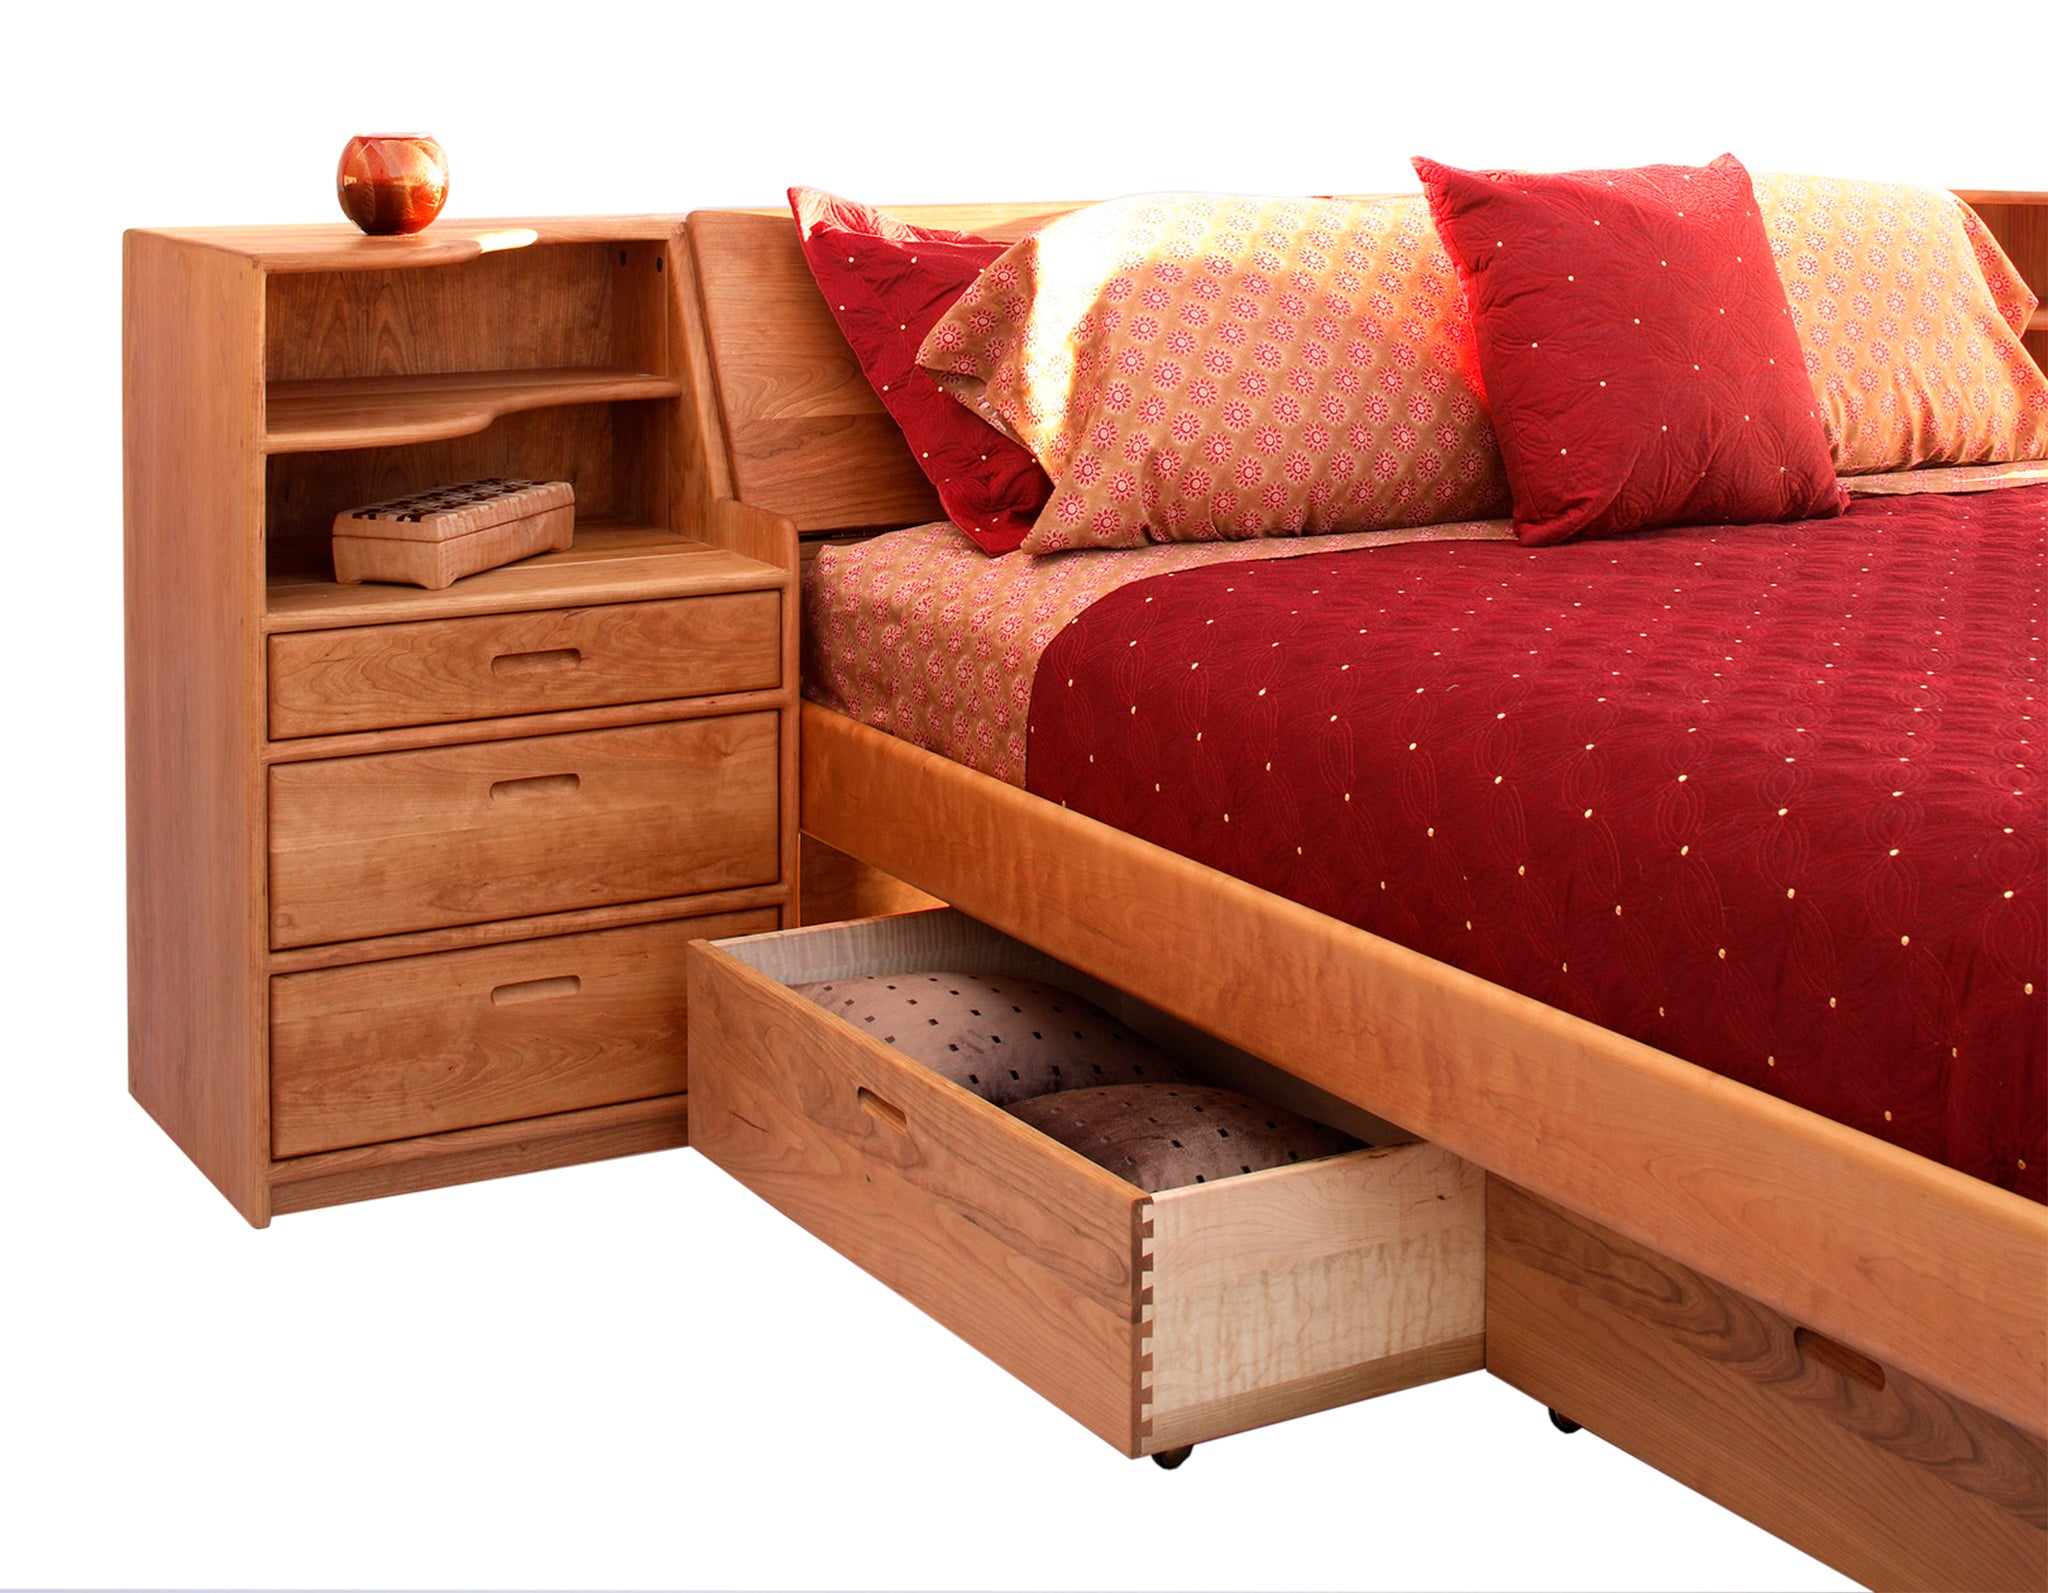 Platform pedestal bed with slope headboard and nightstands in cherry